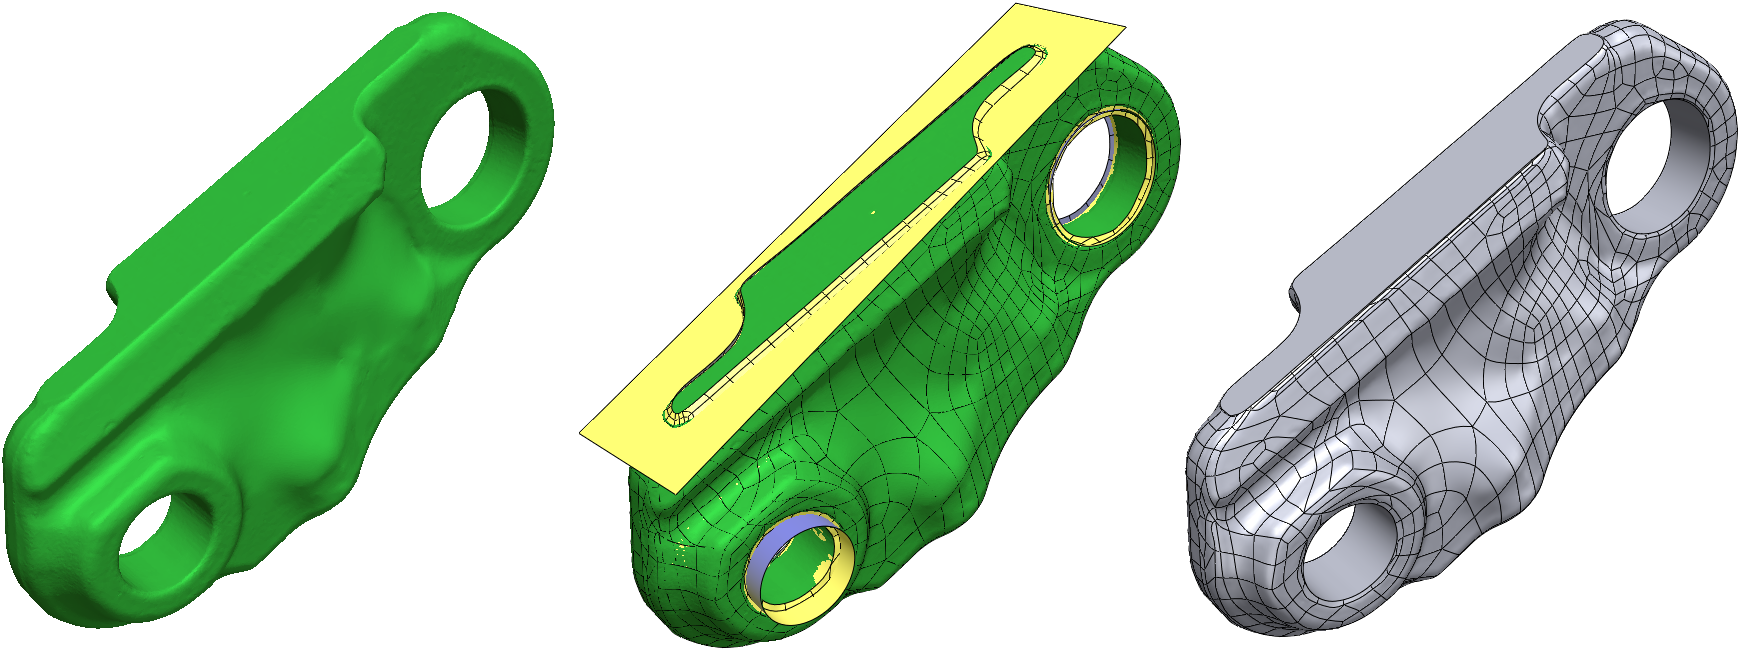 Geomagic Design X 2020 streamlines hybrid modeling workflows for topology optimization. Image via 3D Systems.